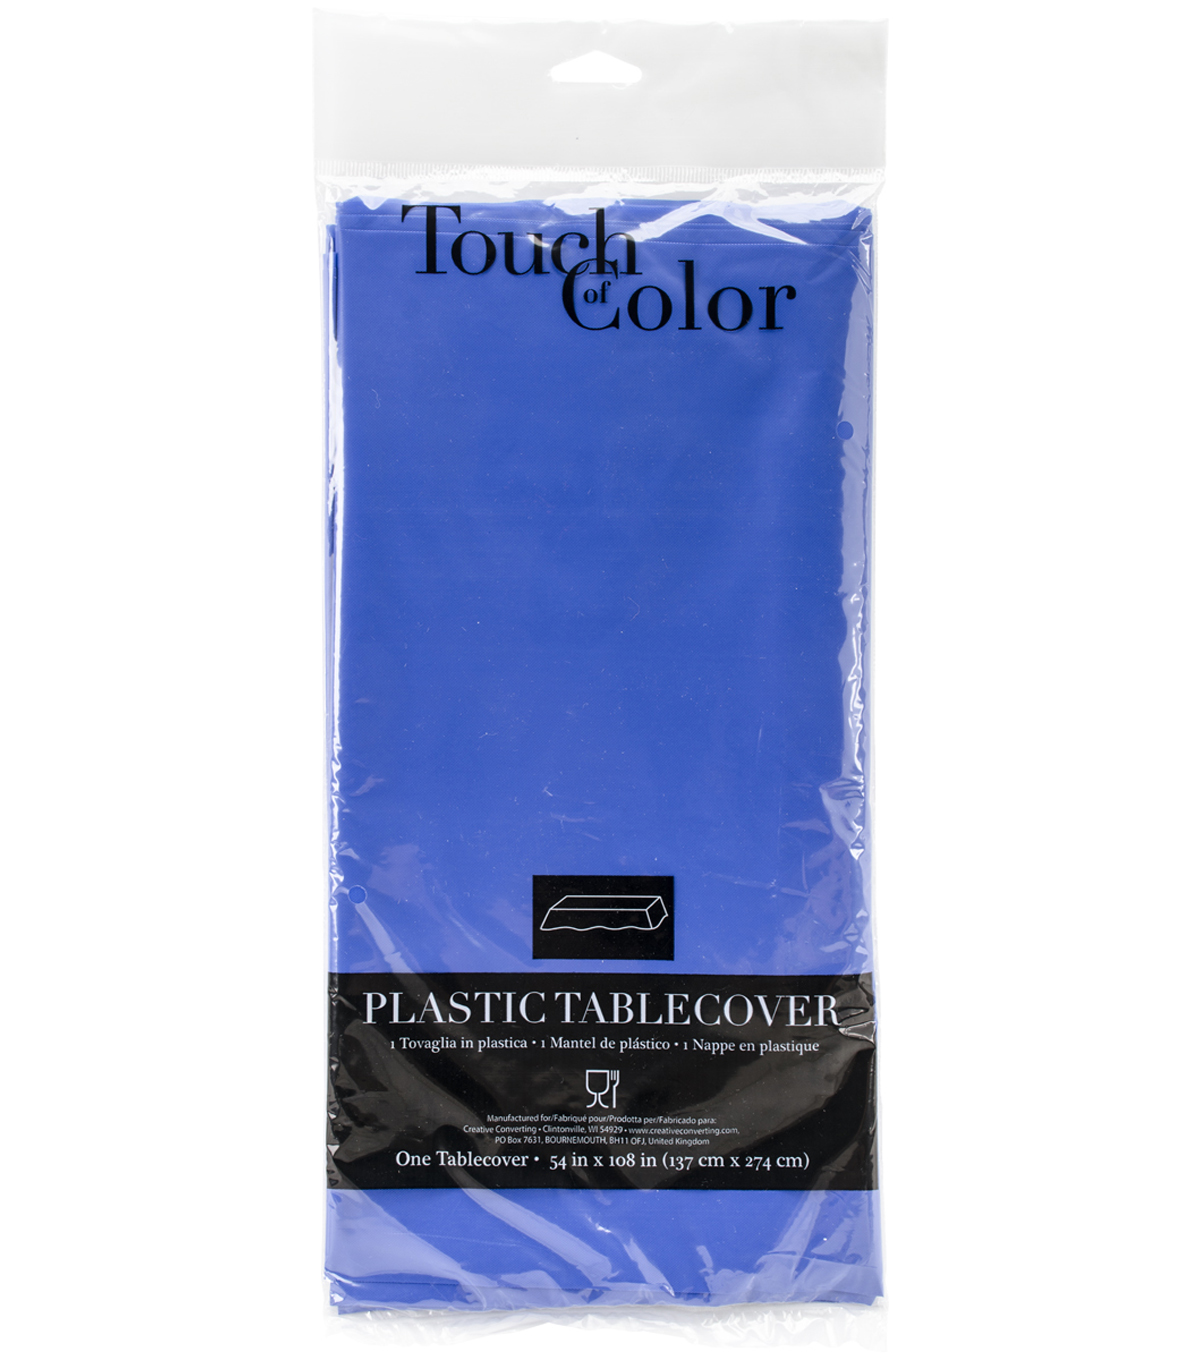 Touch Of Color Plastic Tablecover, Coral